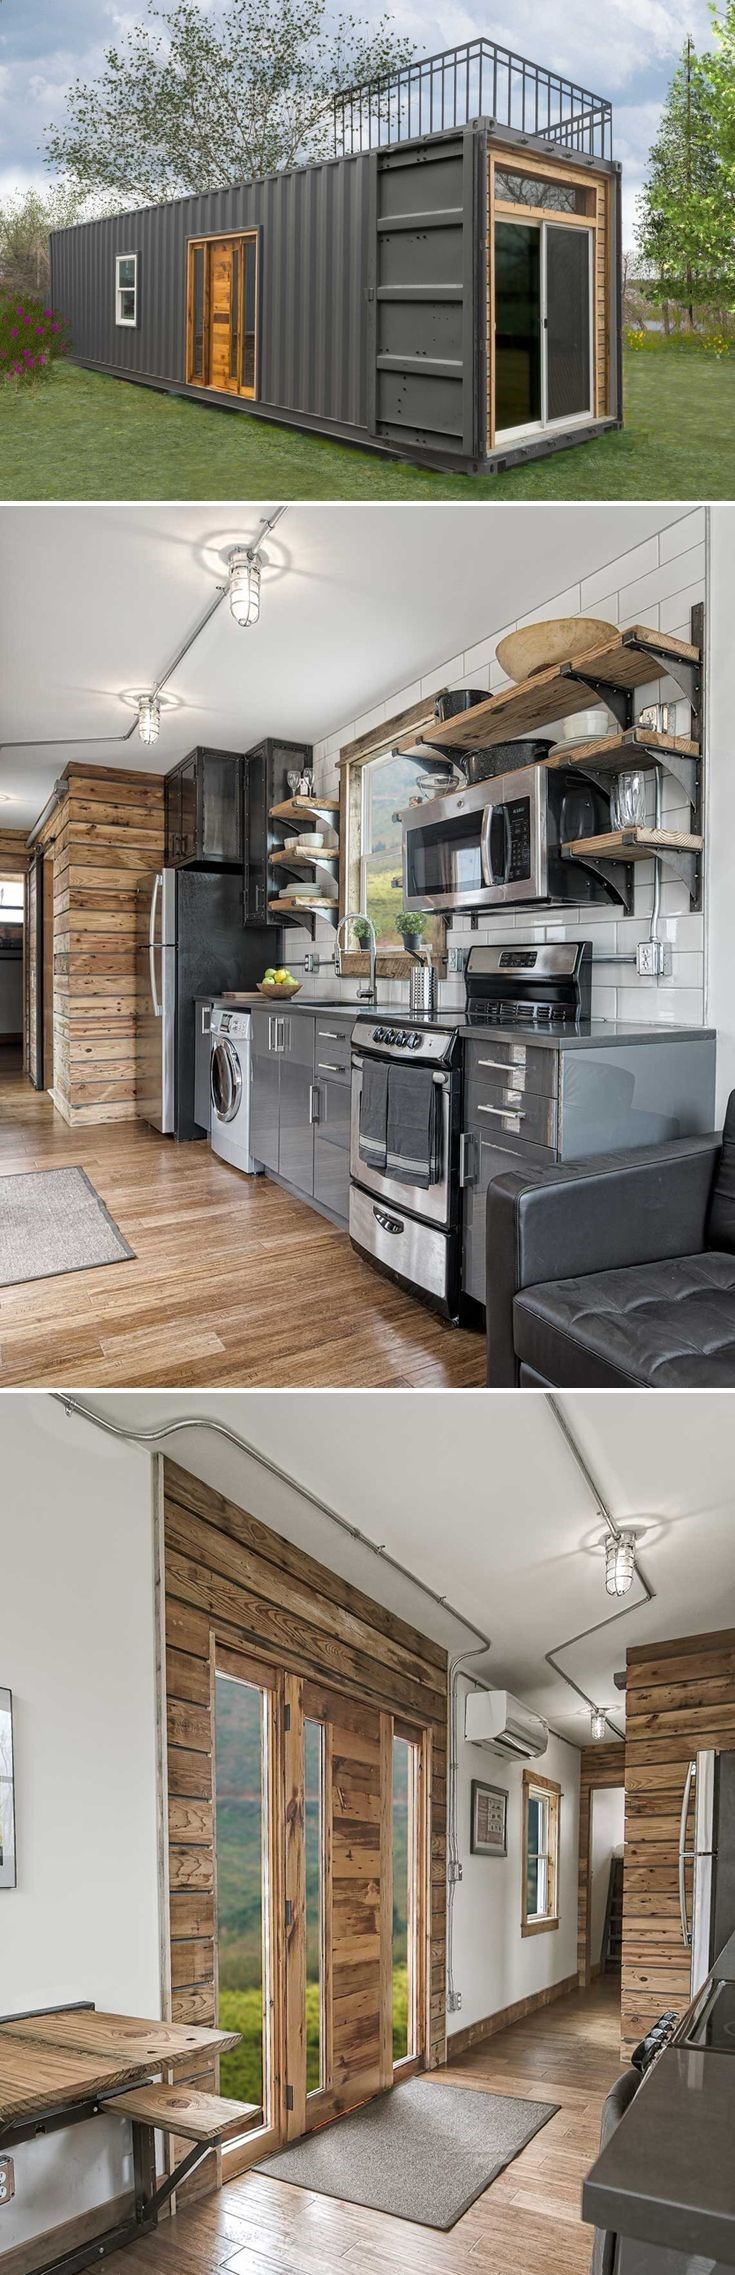 Container House Milford MI based Minimalist Homes